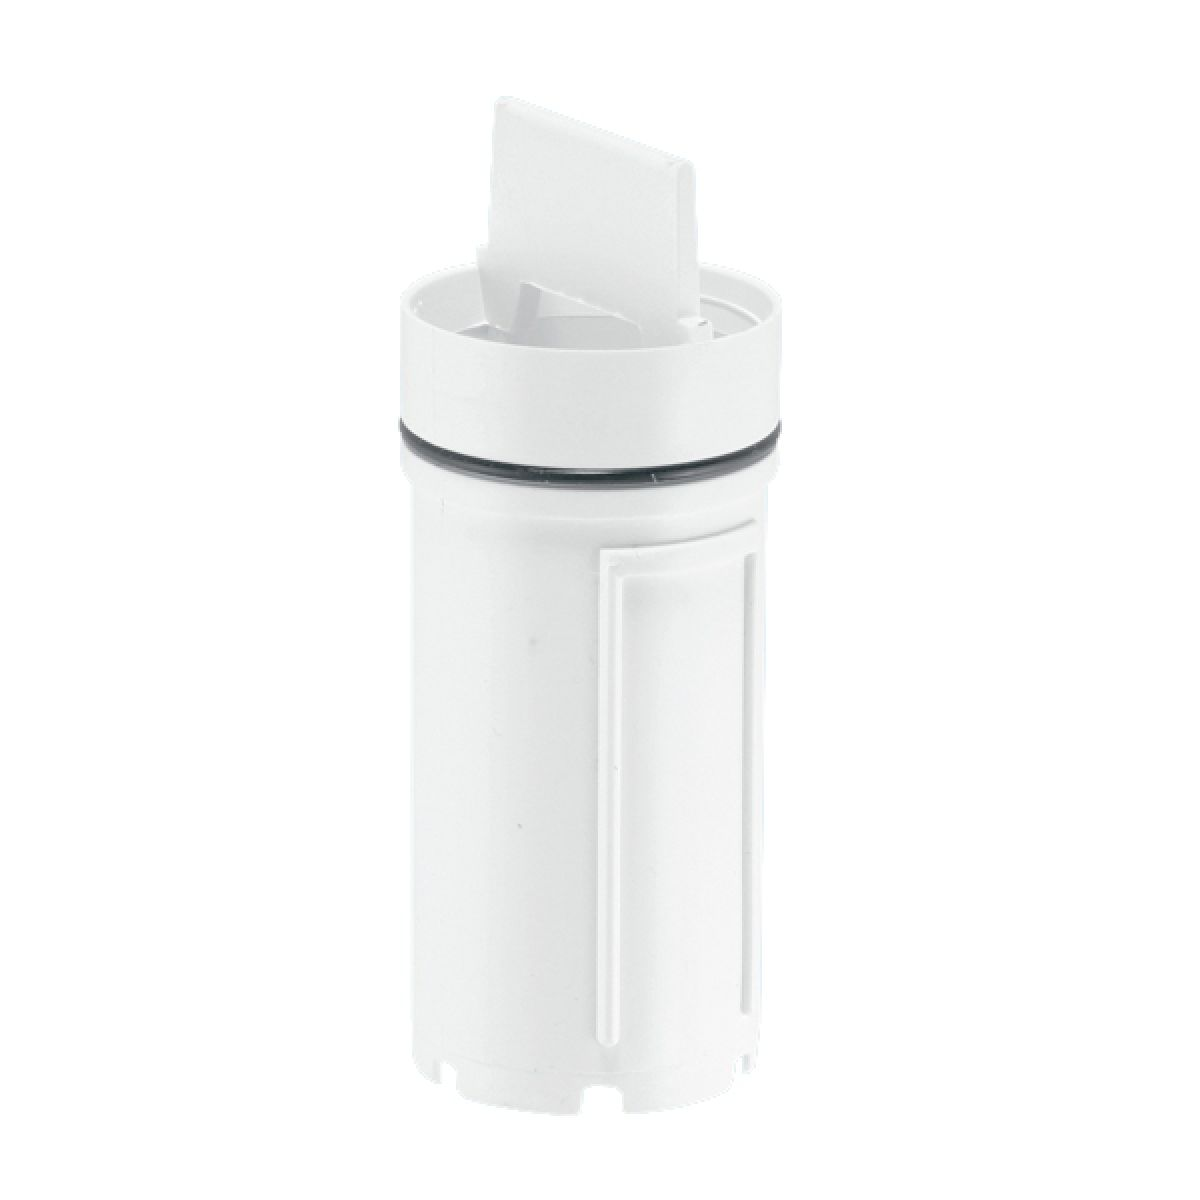 McAlpine Dip Tube for 80mm Water Seal Shower Traps